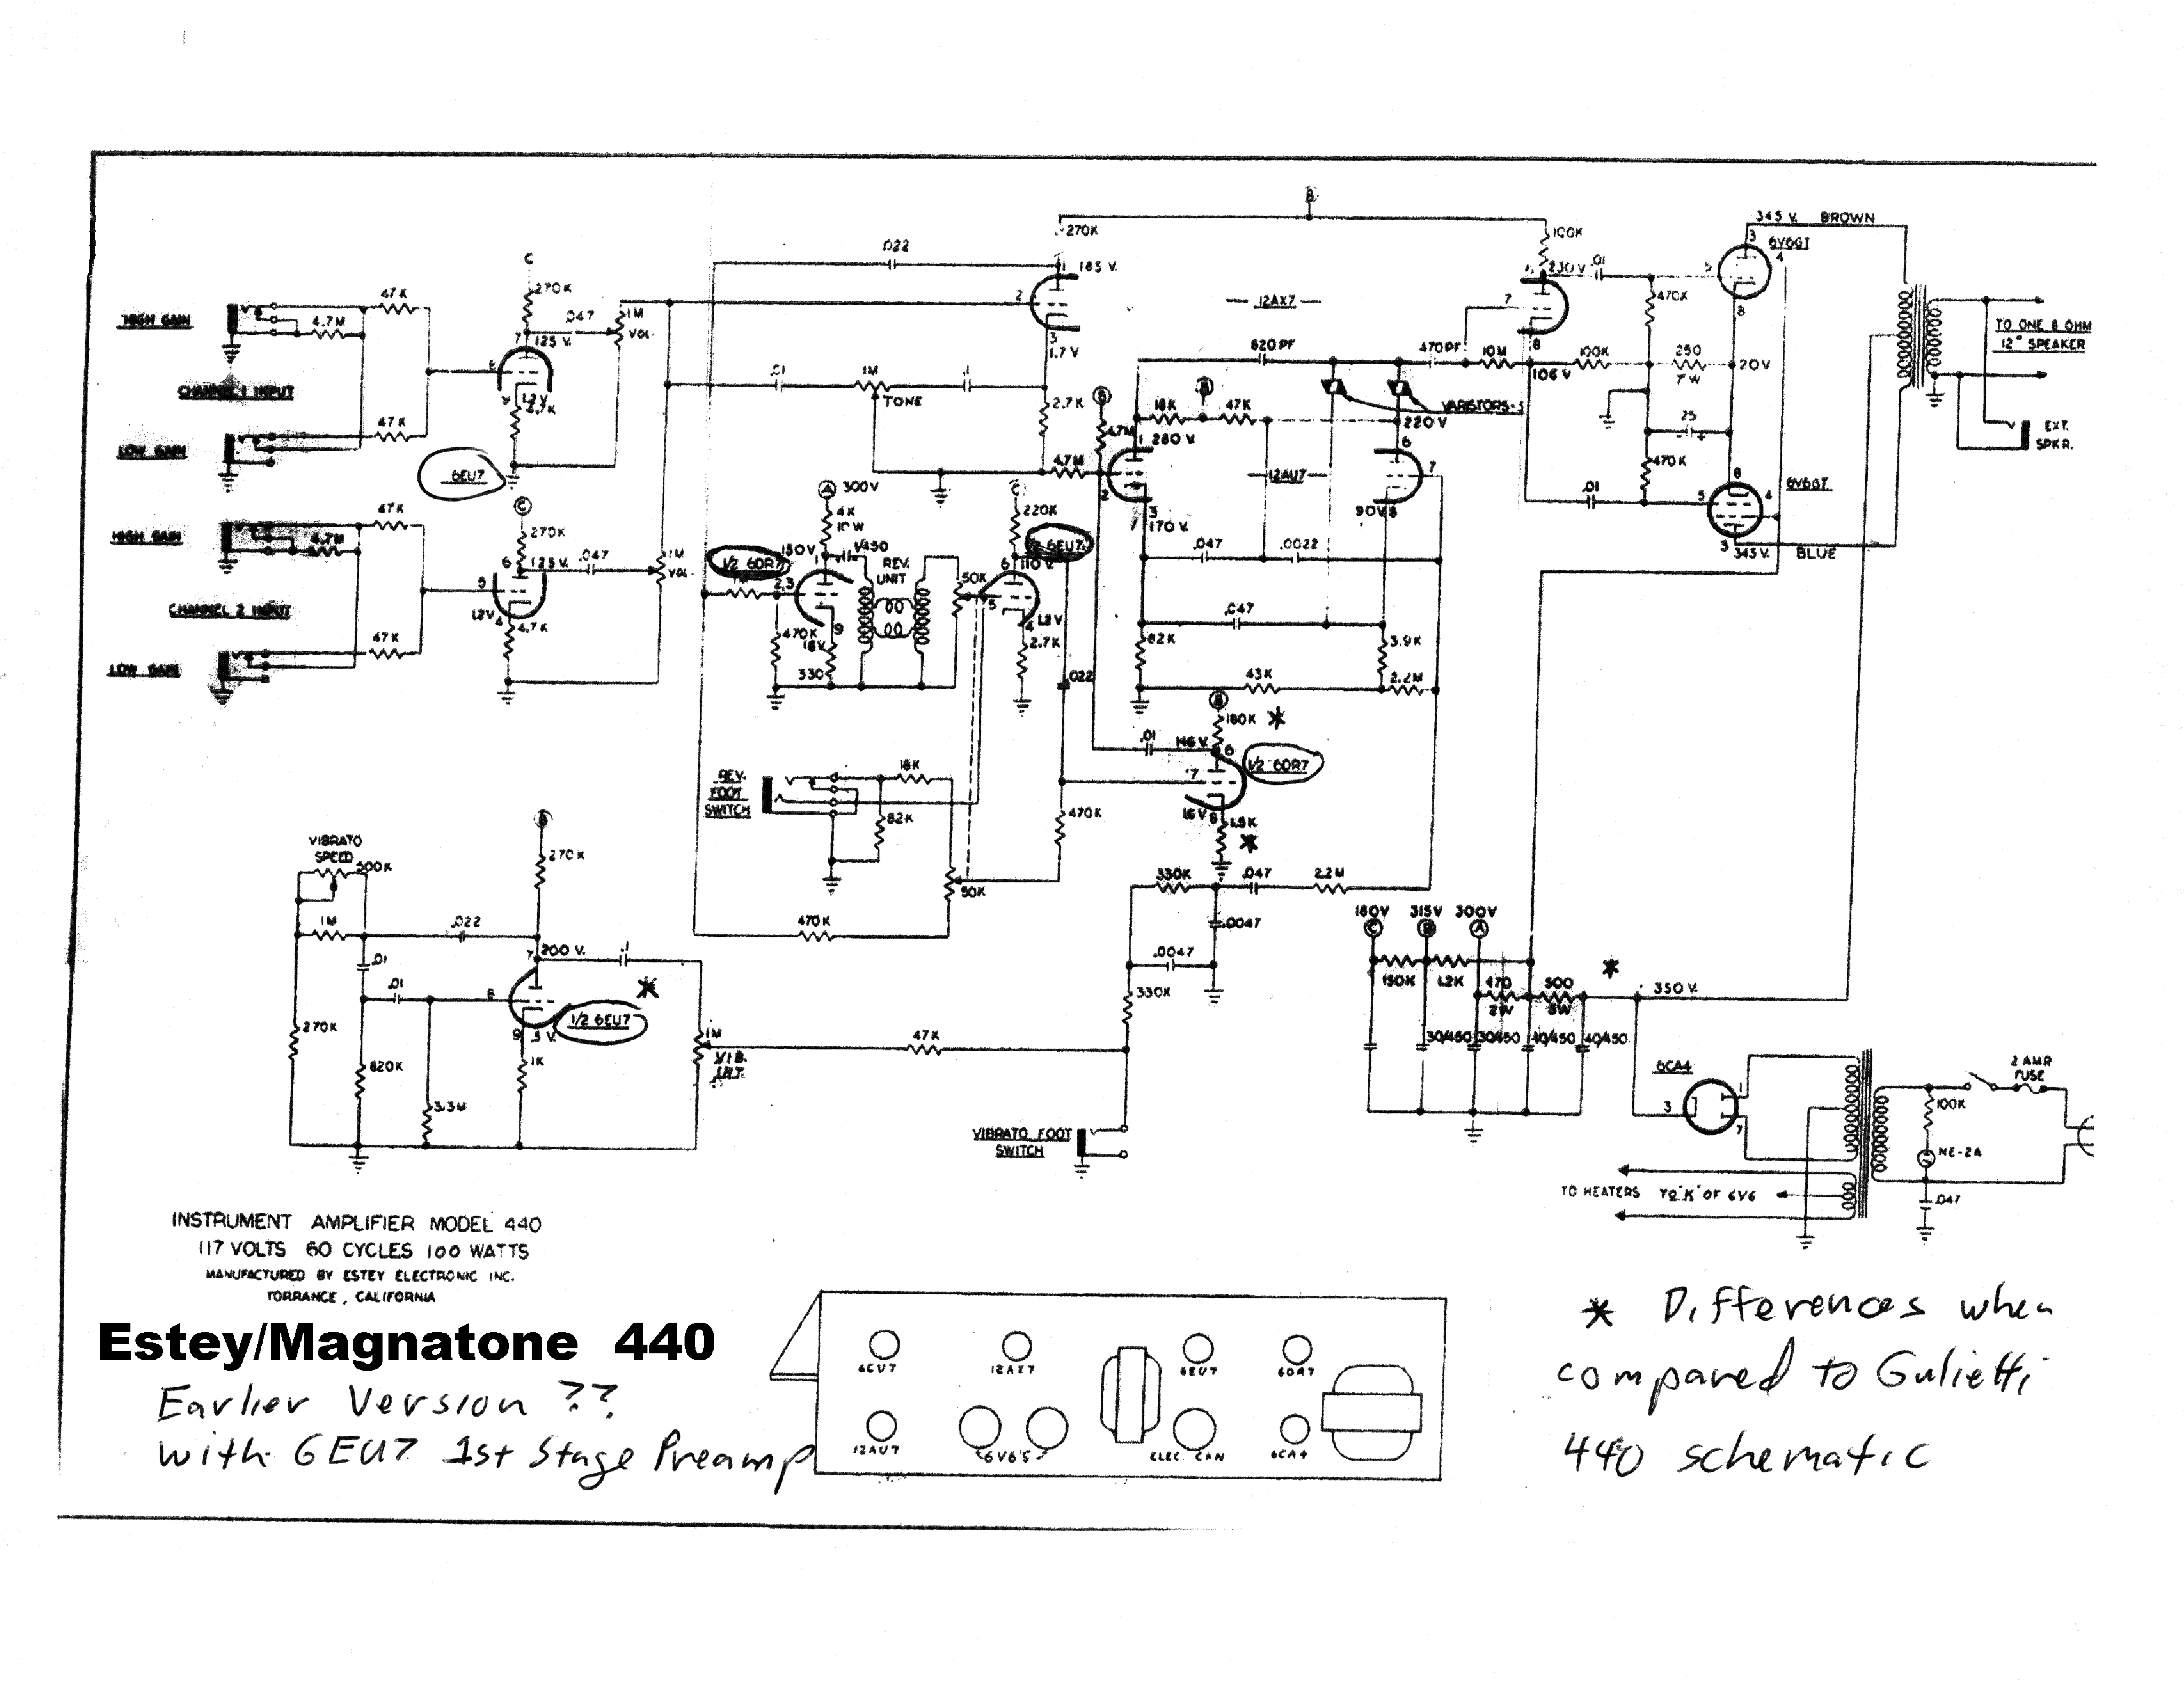 Magnatone 280a Sch Service Manual Download Schematics Eeprom Repair Info For Electronics Experts